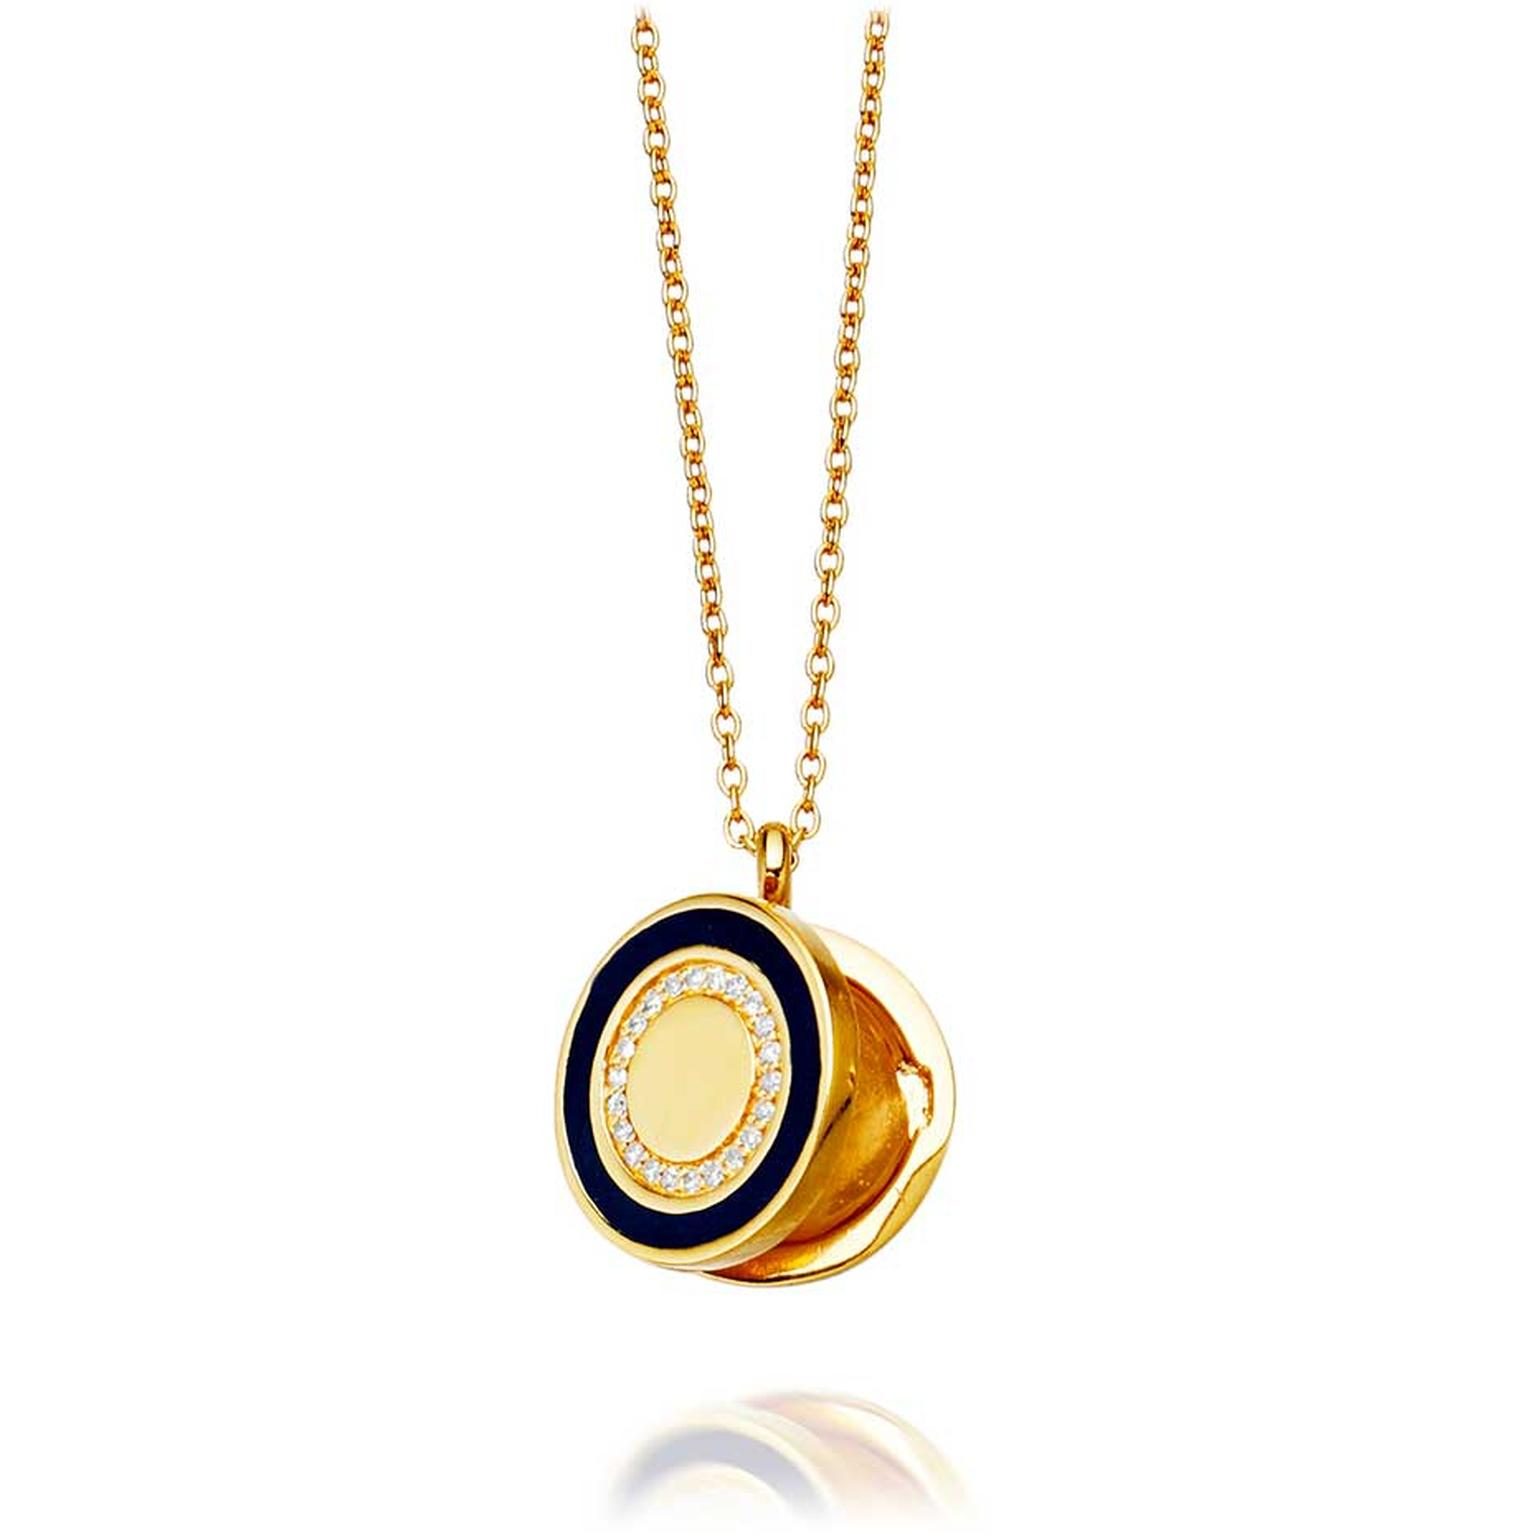 Astley Clarke Midnight Cosmos locket in gold with diamonds (£995.00).